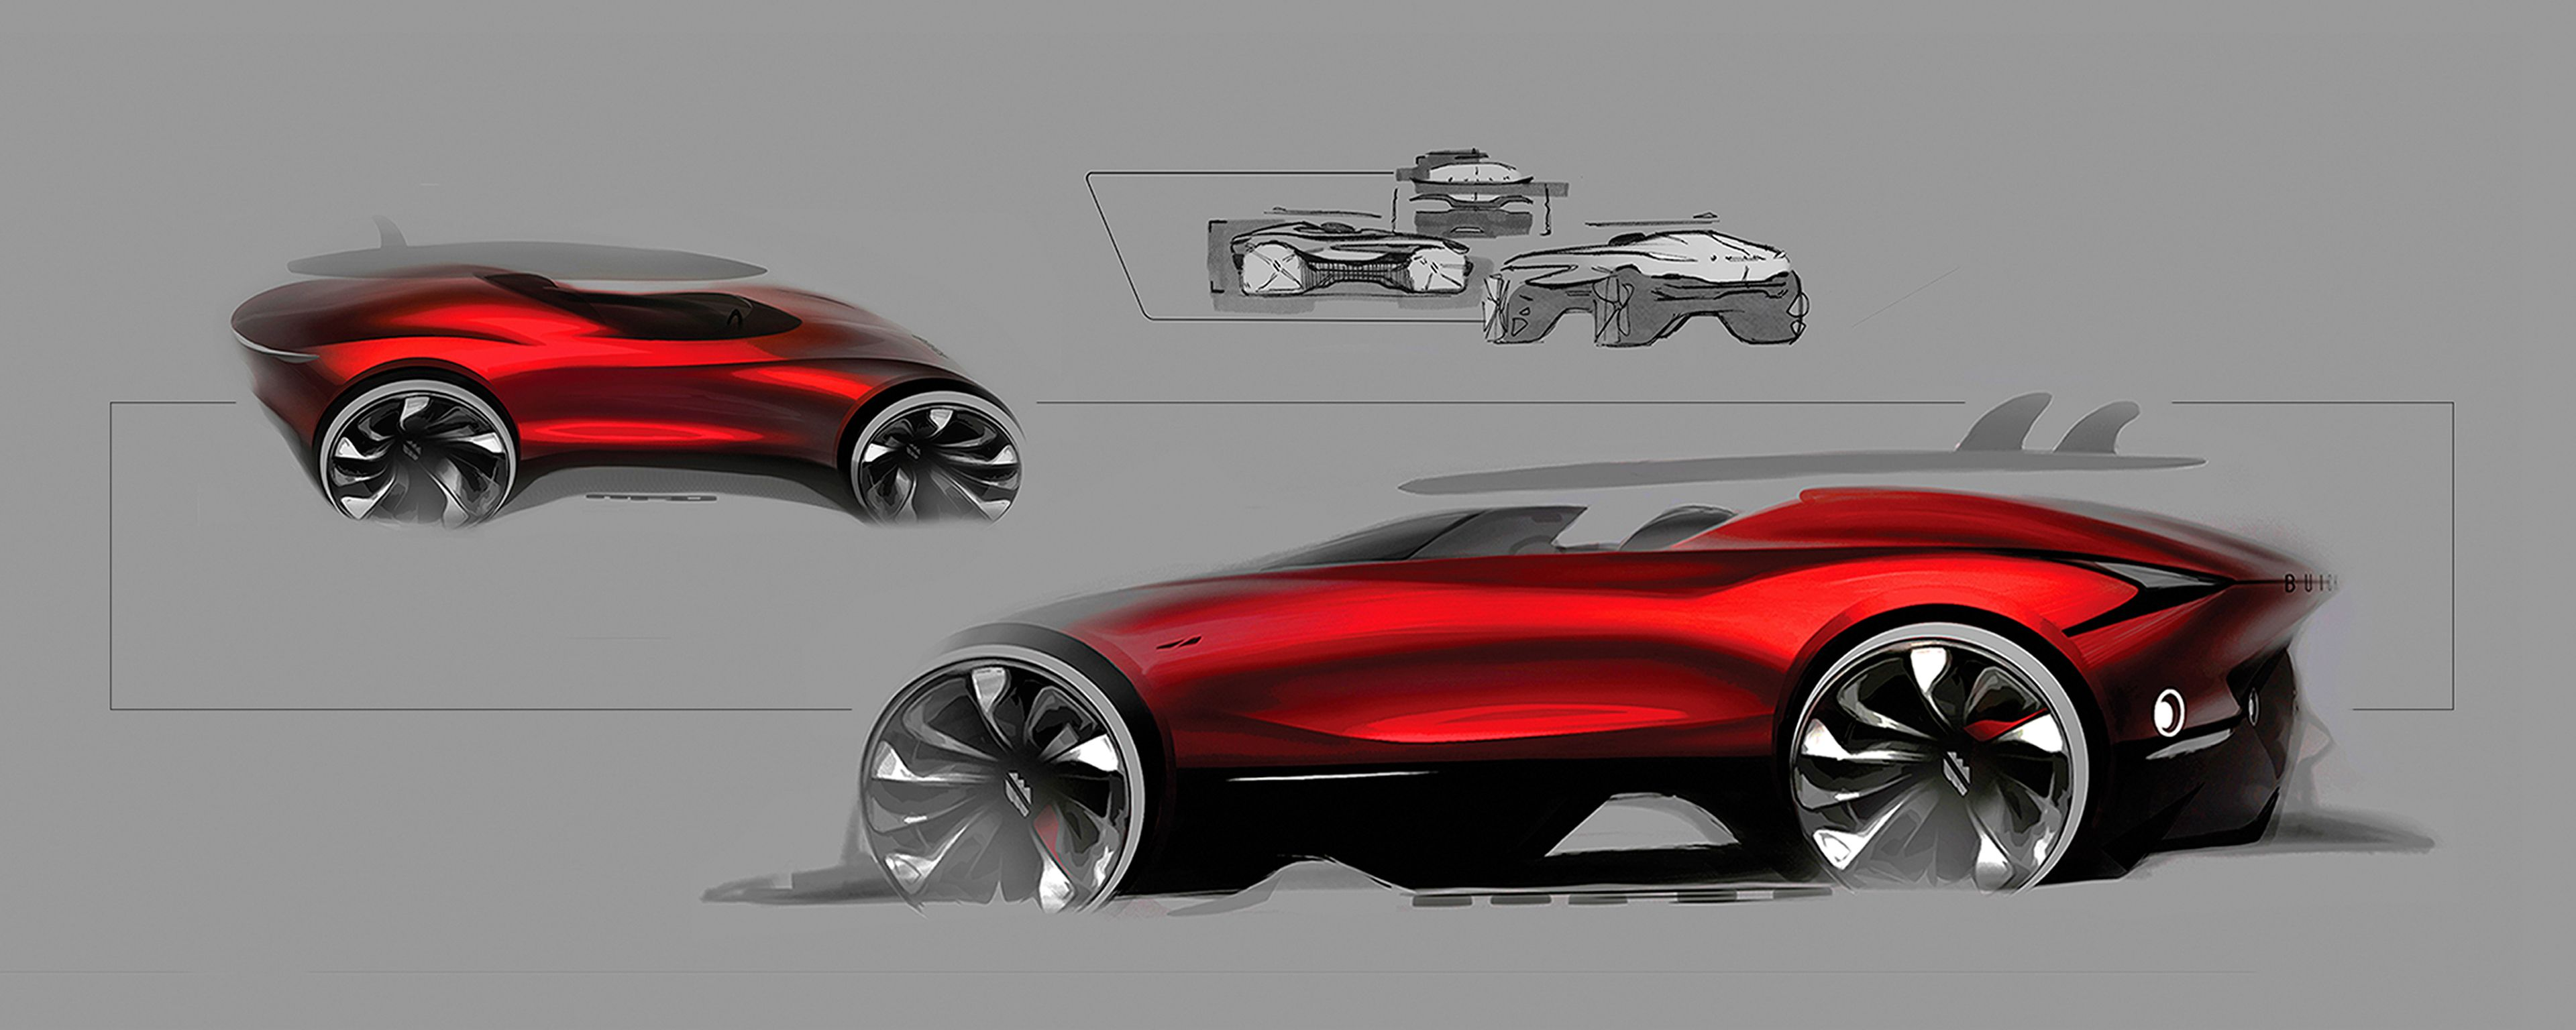 Buick Offroadster Concept on Behance